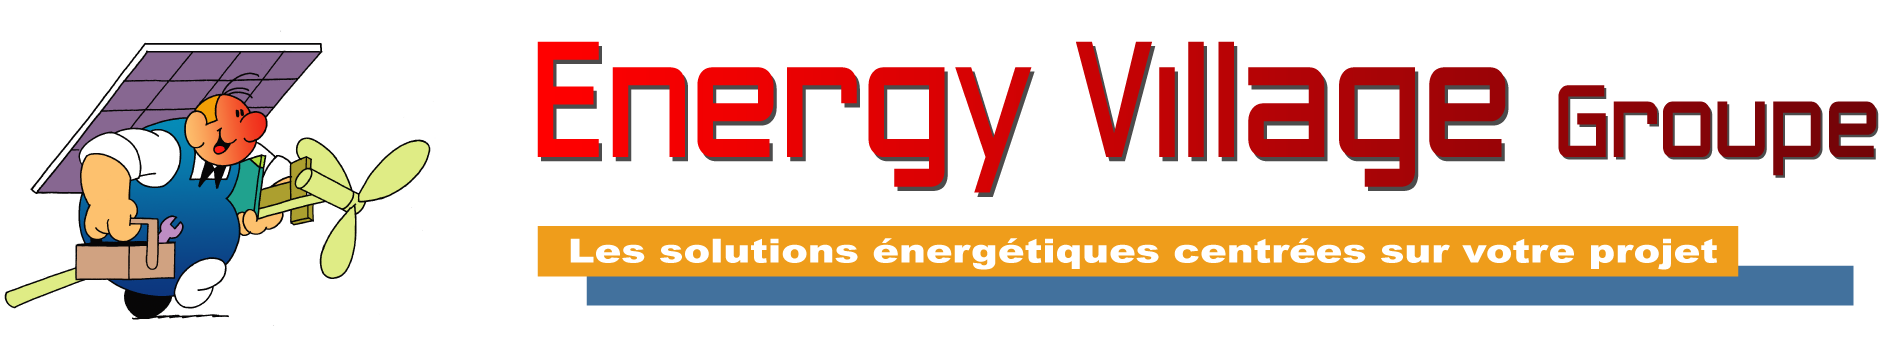 Energy Village Groupe